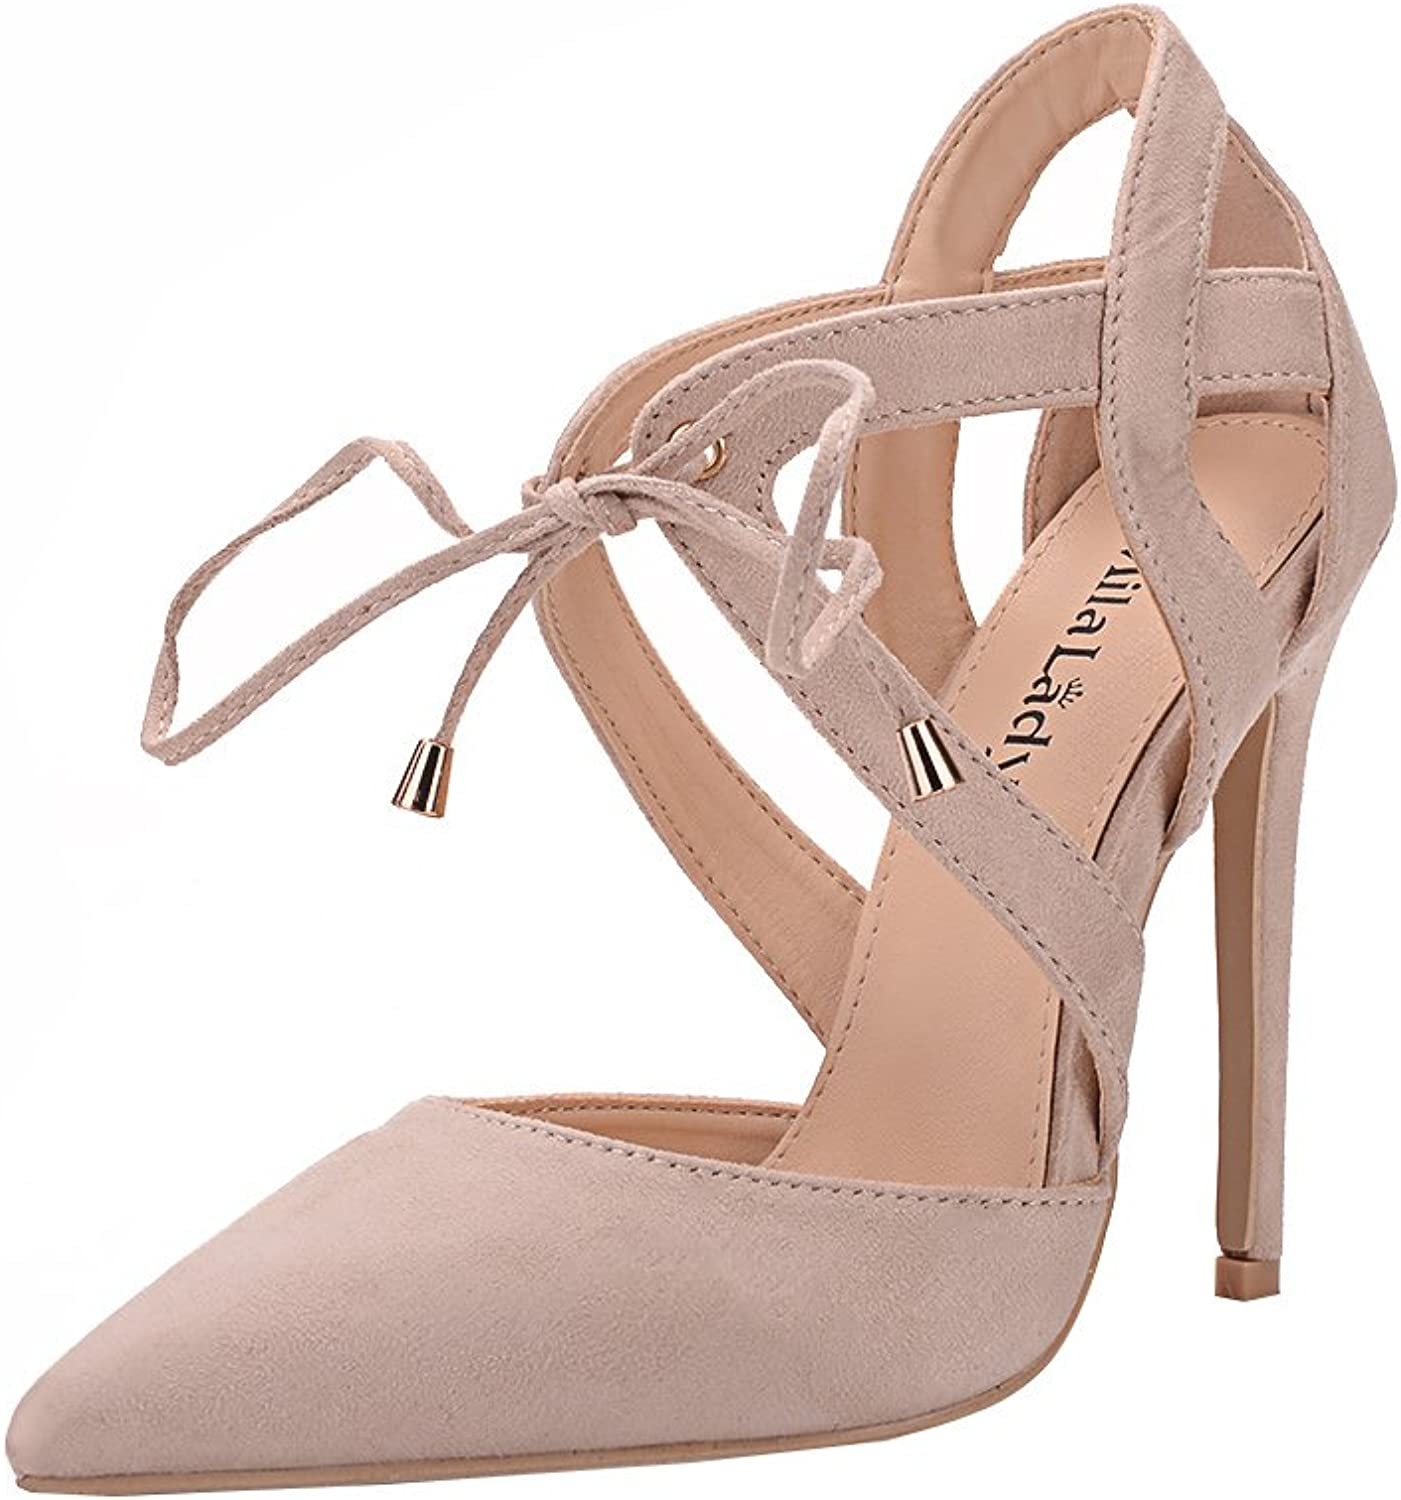 Mila Lady Nydia D'Orsay Classic Lace Ankle Strappy Elegance Platform Lady Heels